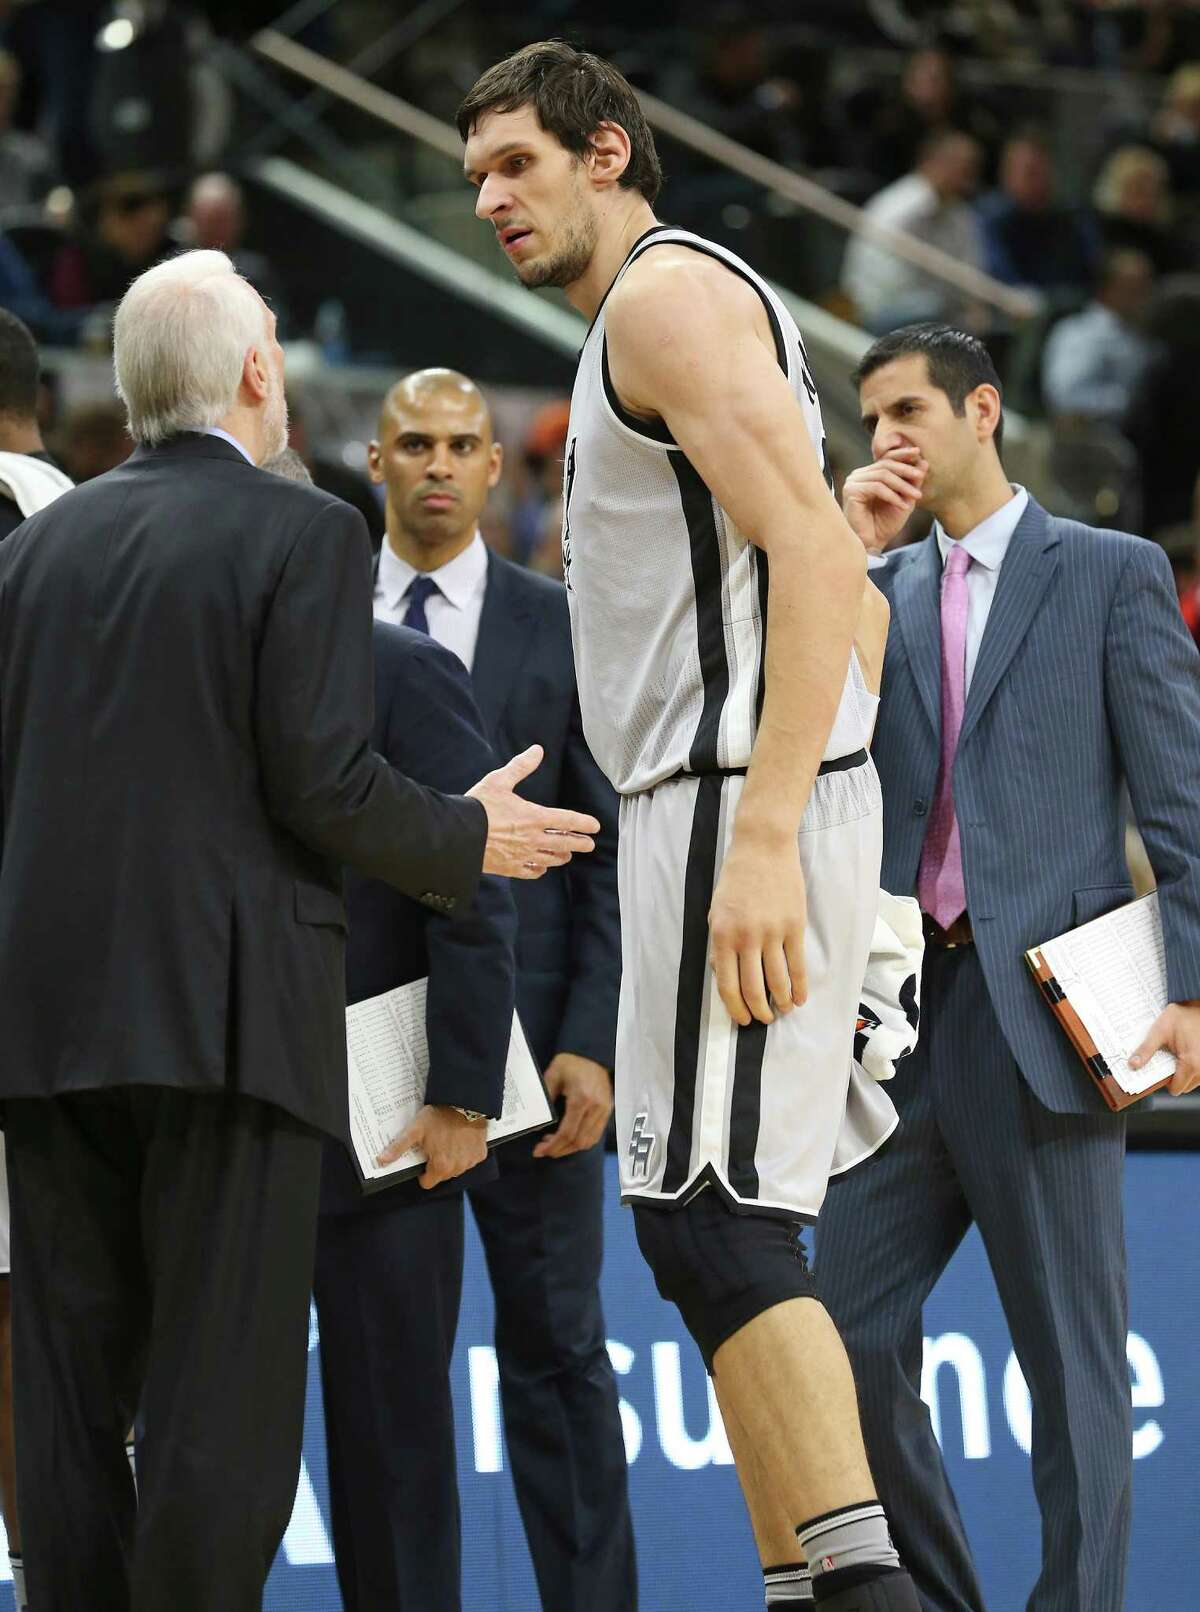 Coach Gregg Popovich confronts Boban Marjanovic during a time out as the Spurs play the Atlanta Hawks at the AT&T Center on November 28, 2015.